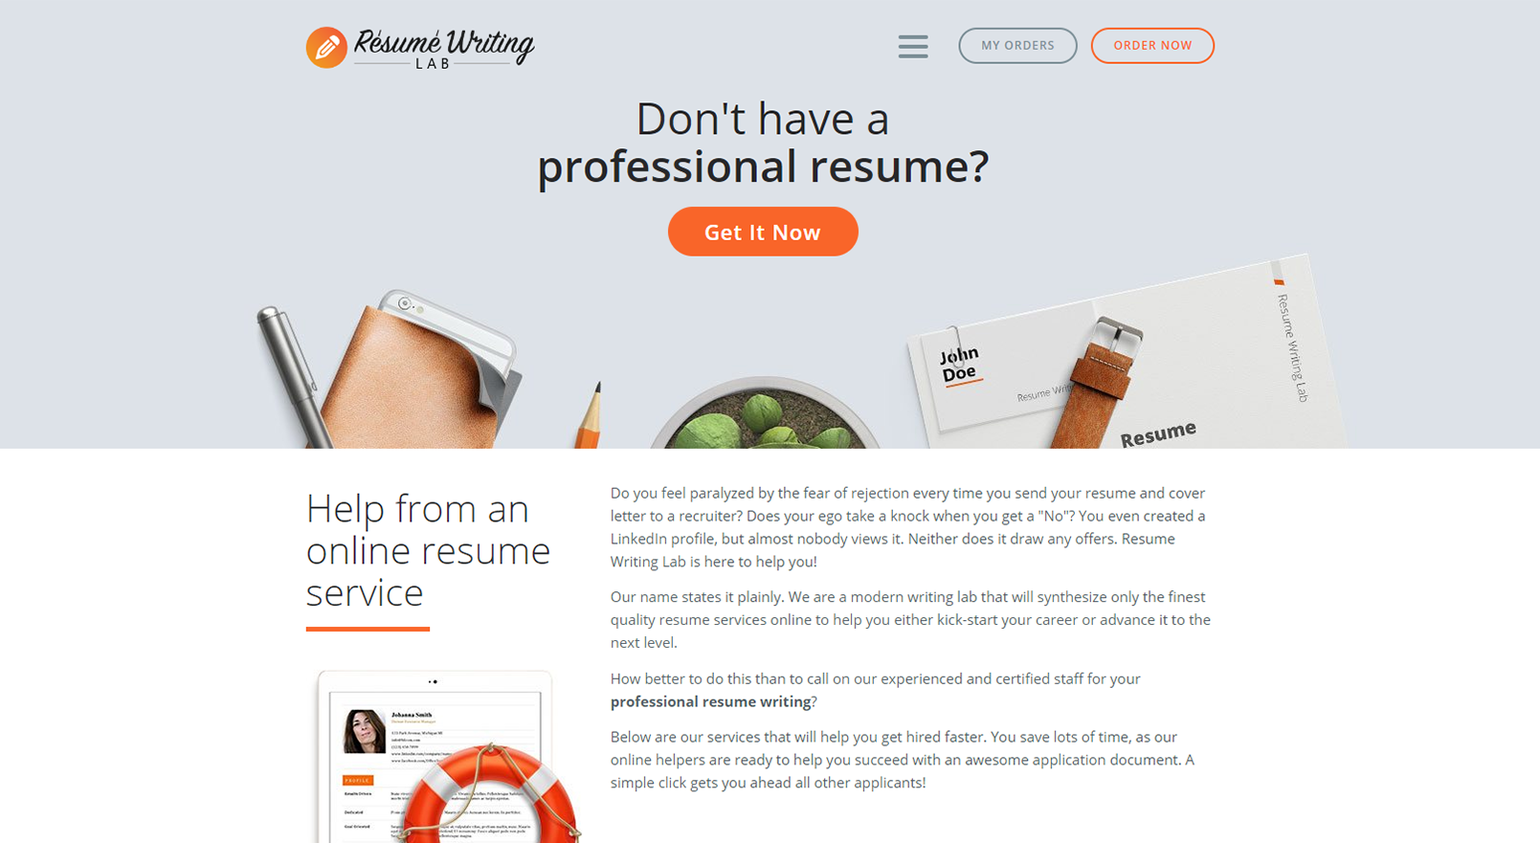 Resume Writing Lab